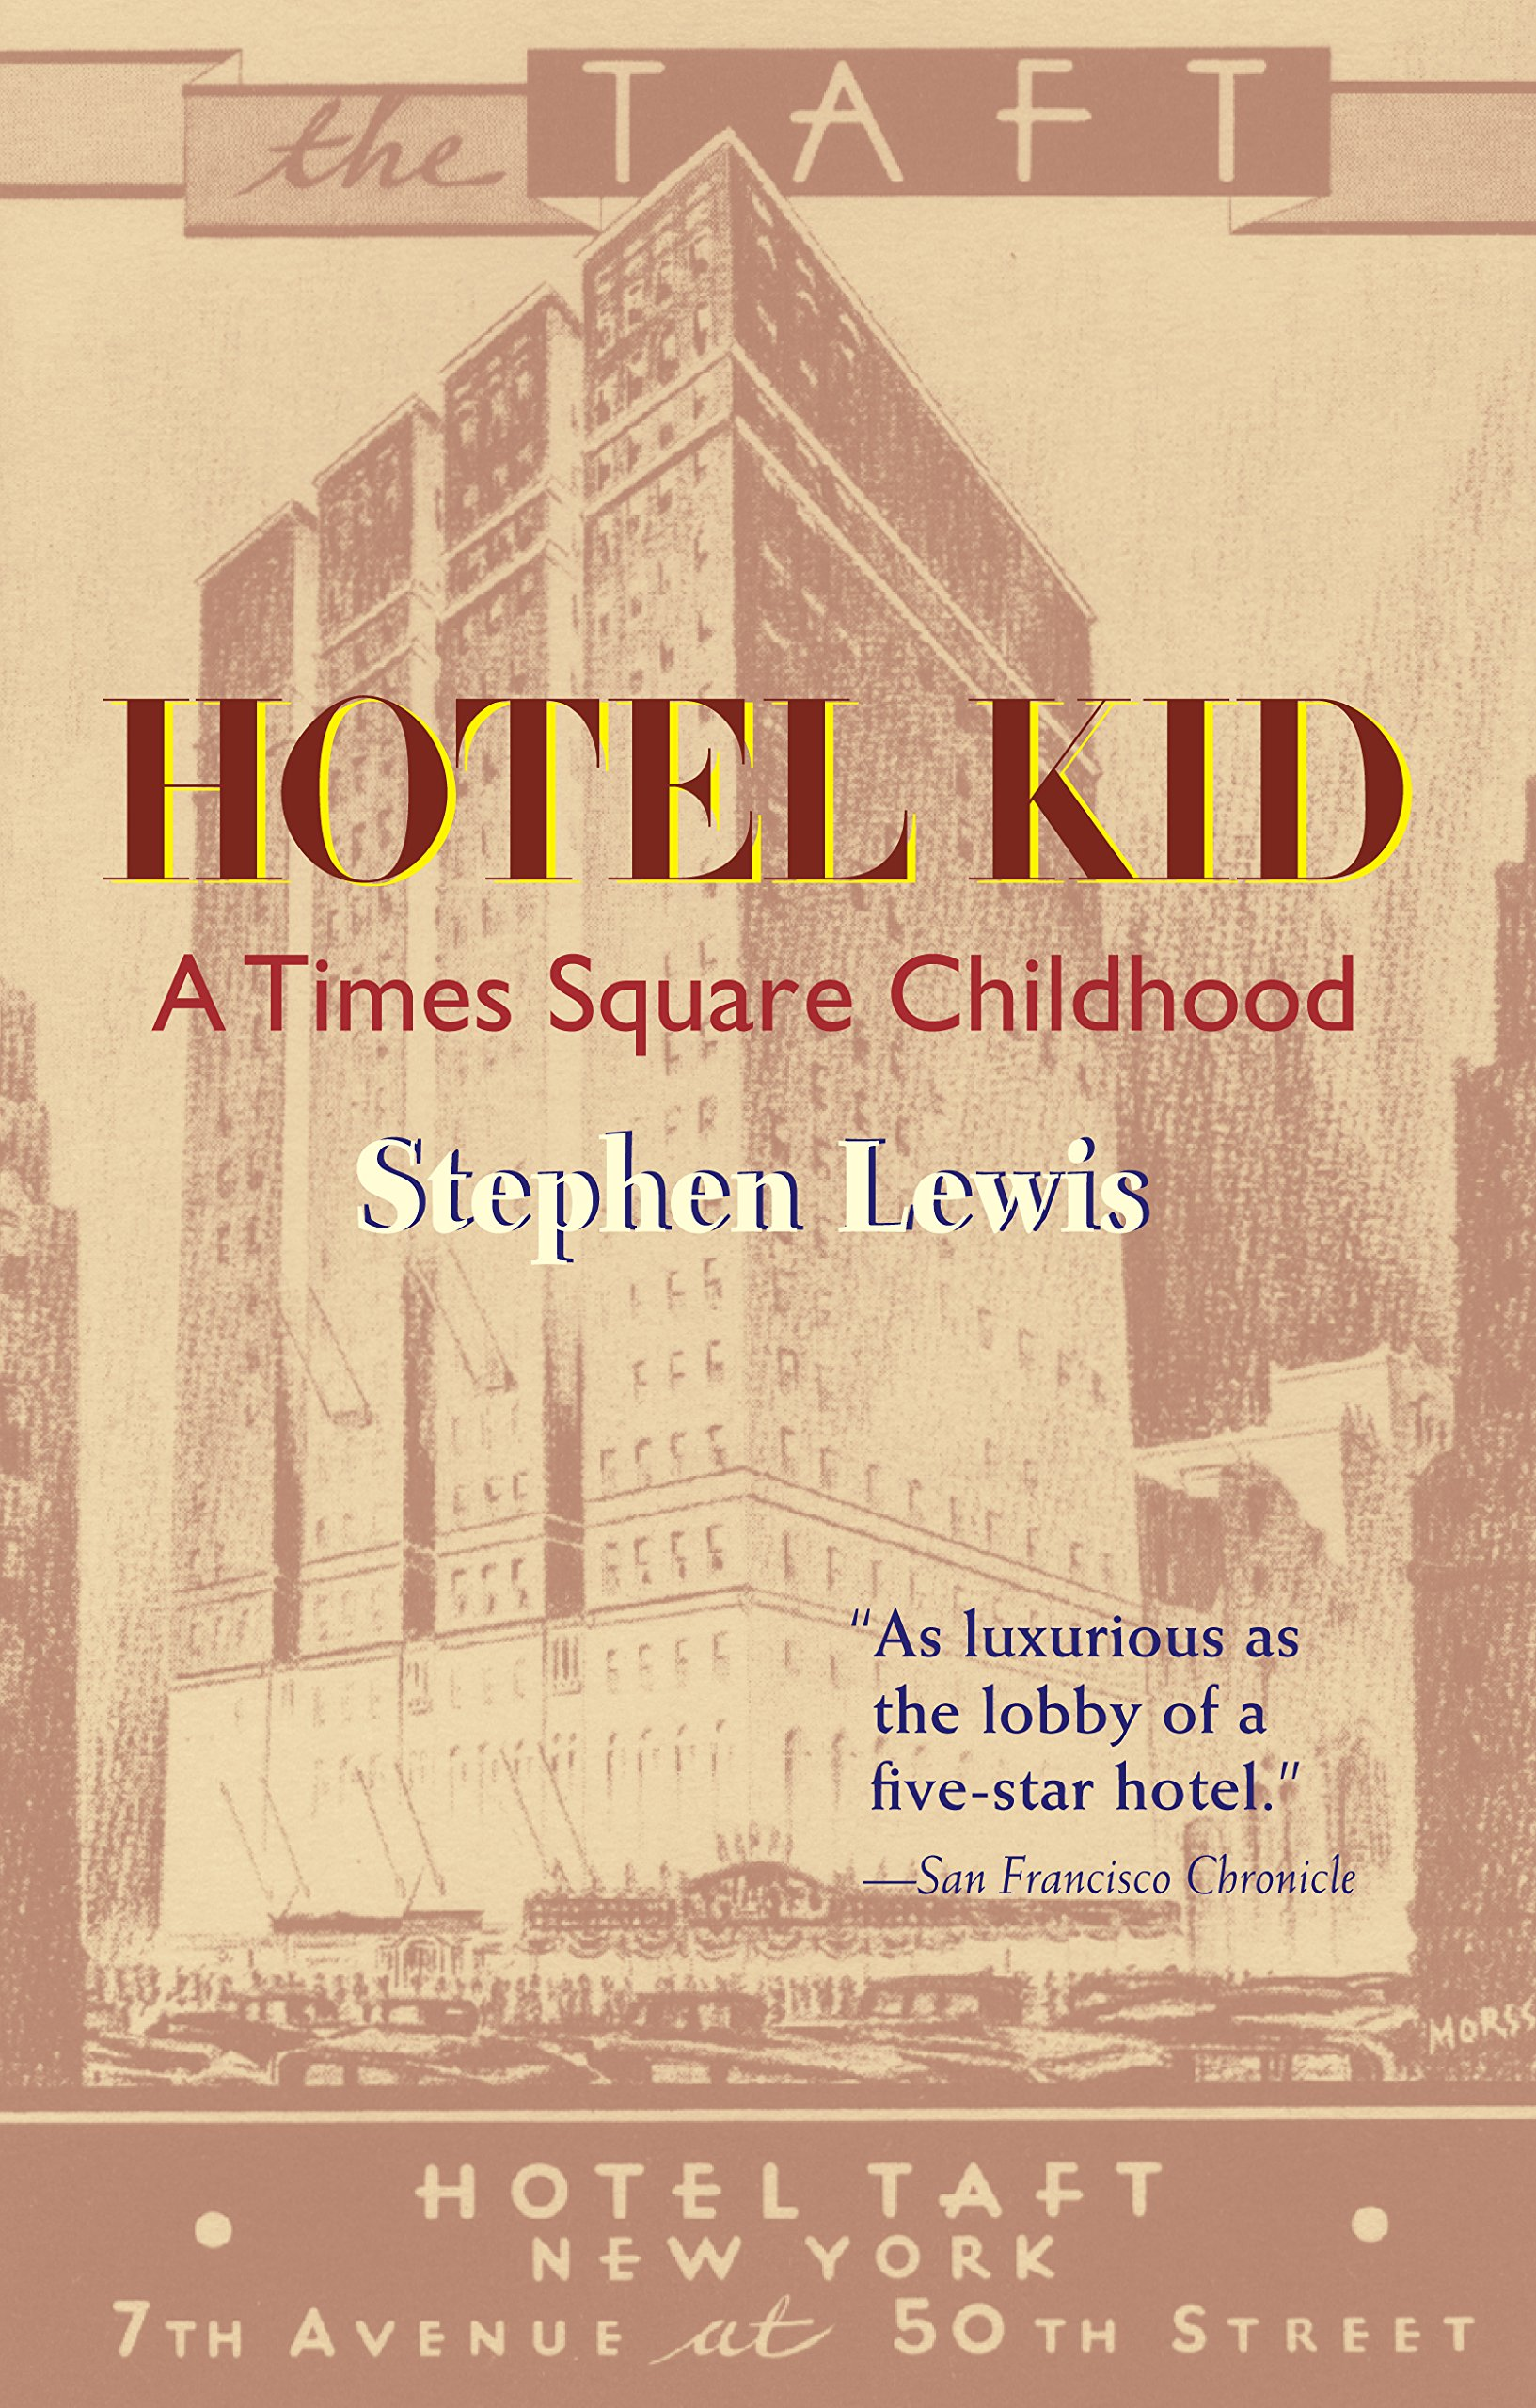 Hotel Kid: A Times Square Childhood